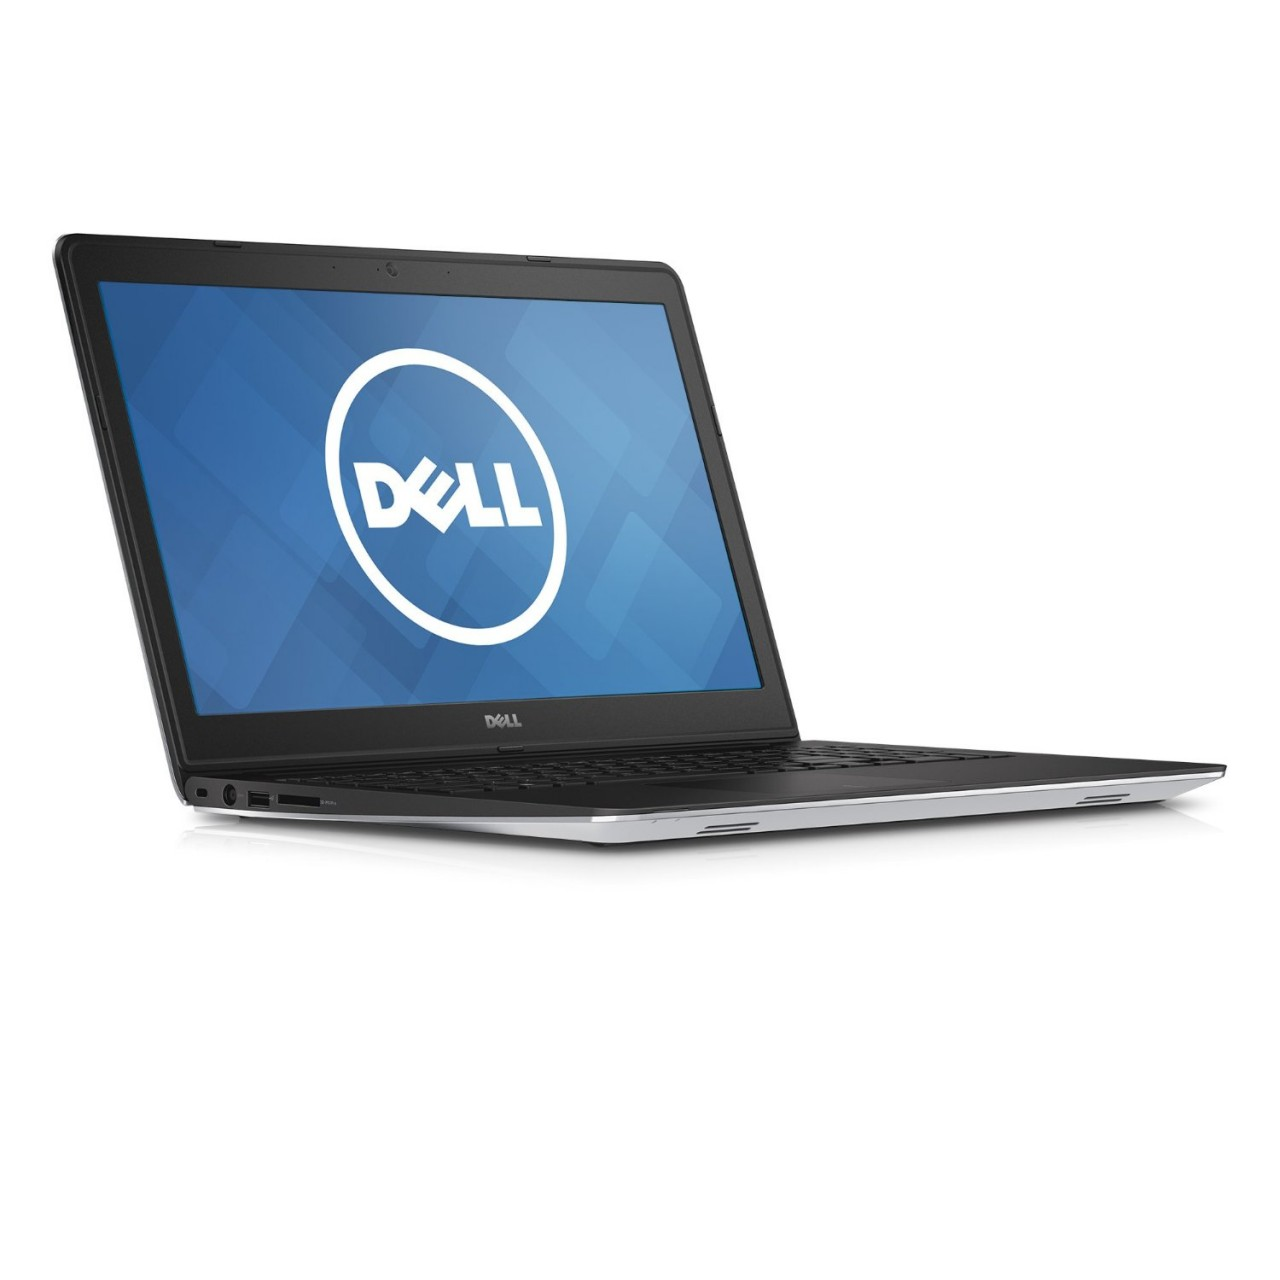 Notebook samsung price in pakistan - Dell Inspiron 15 5547 With Free Laptop Bag 1 Year Local Warranty Intel Core I5 4210u Cpu 4gb Memory 2gb Amd Graphics 1tb Storage Price In Pakistan